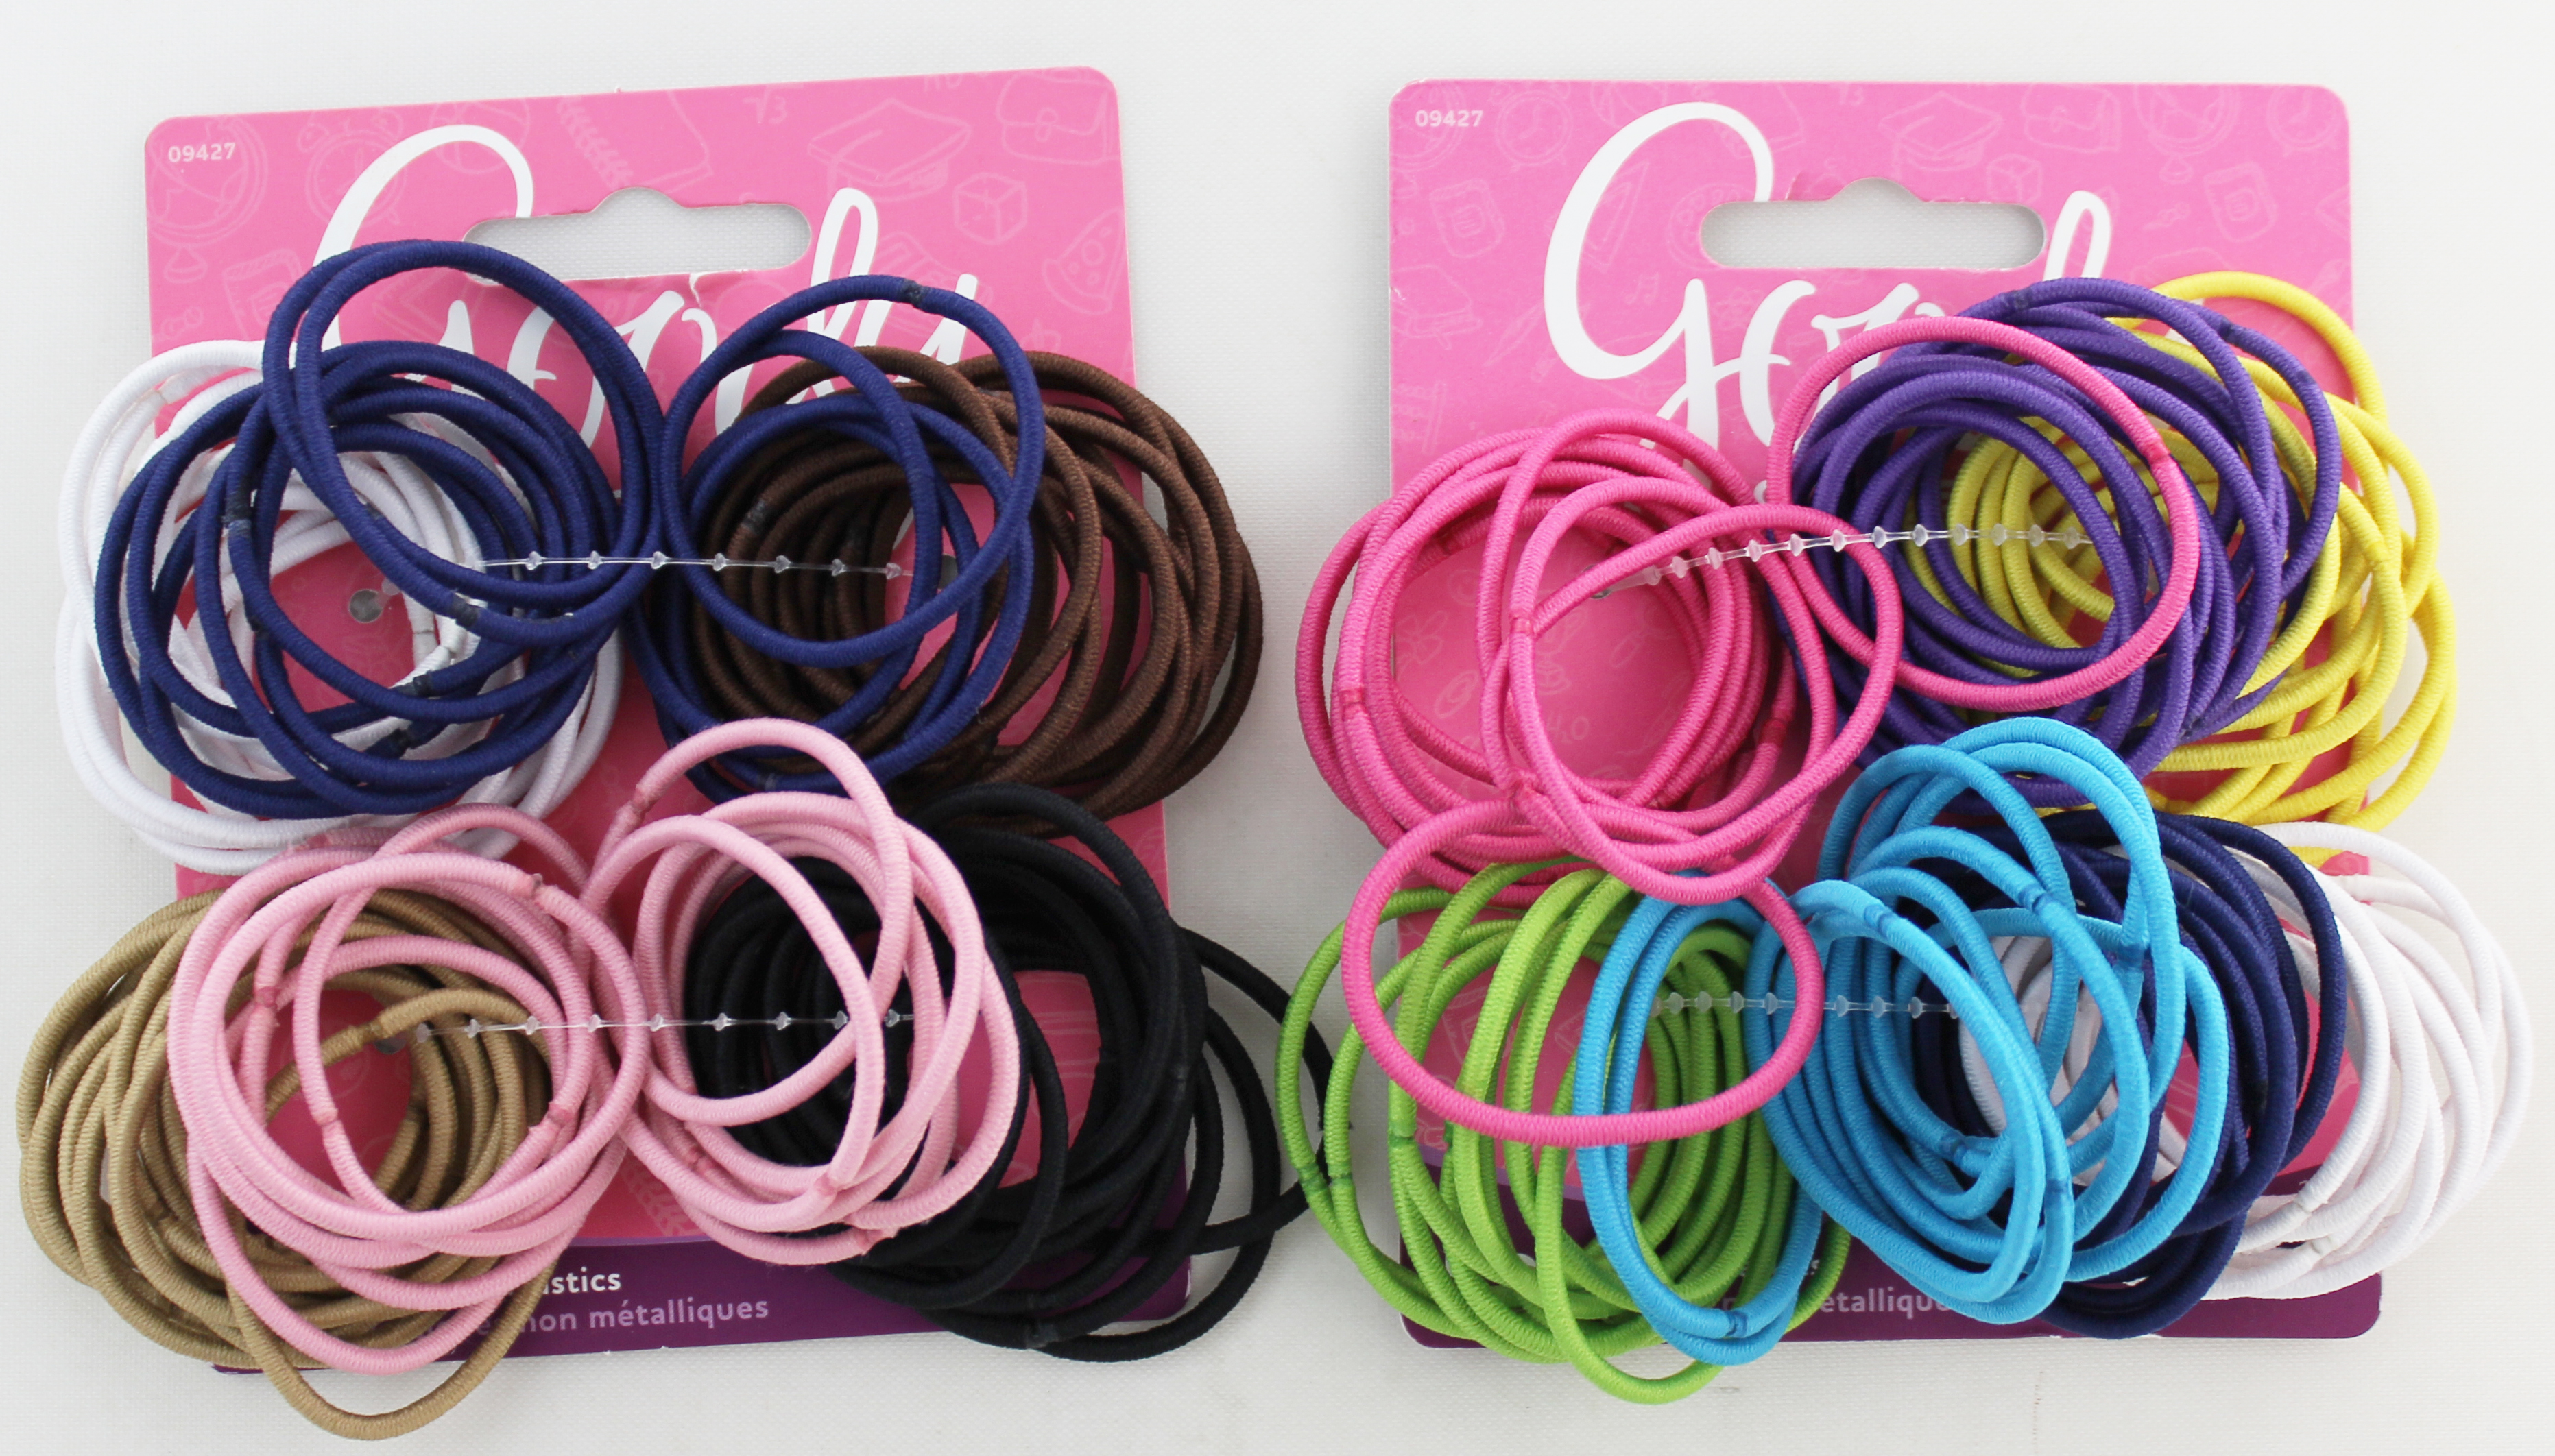 Goody Girls Ouchless Elastics, 2 mm, 72 Count (assorted color)